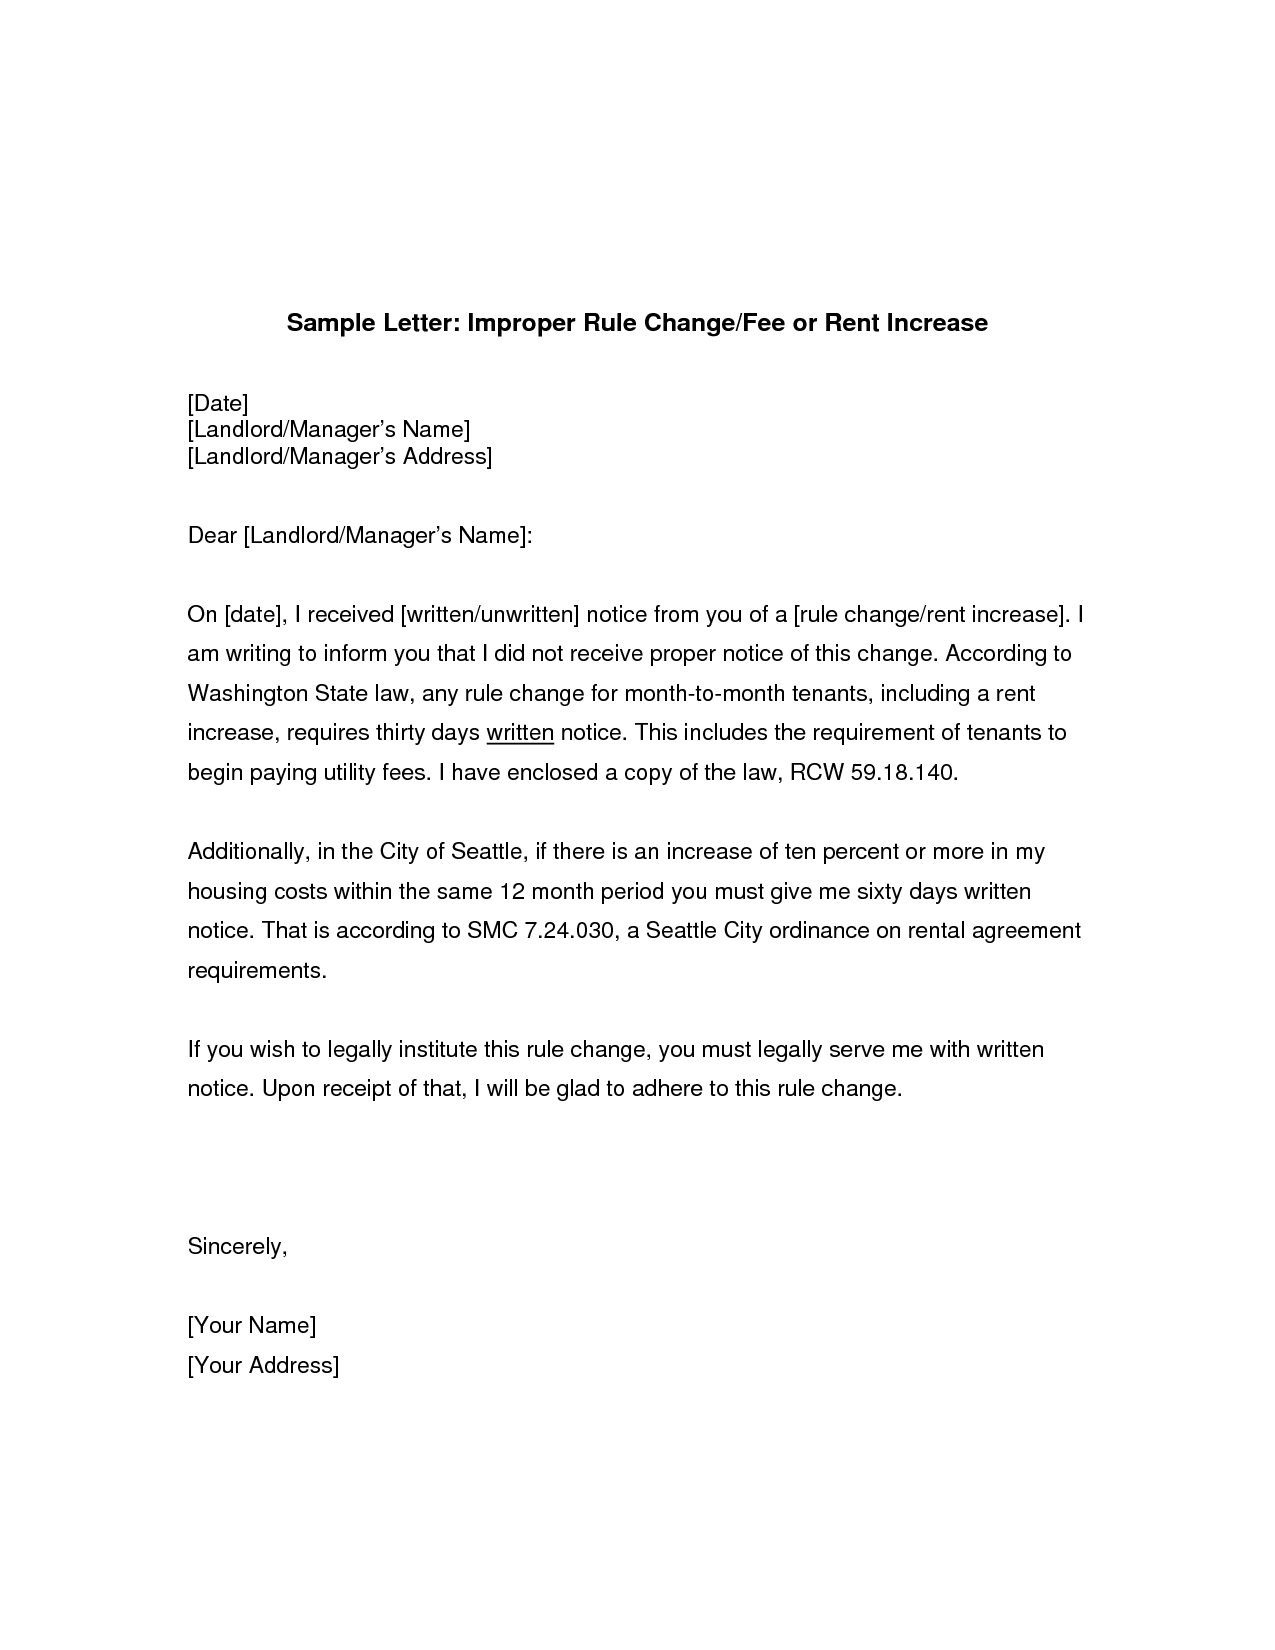 self storage rent increase letter template example-rent increase sample letter 3-q